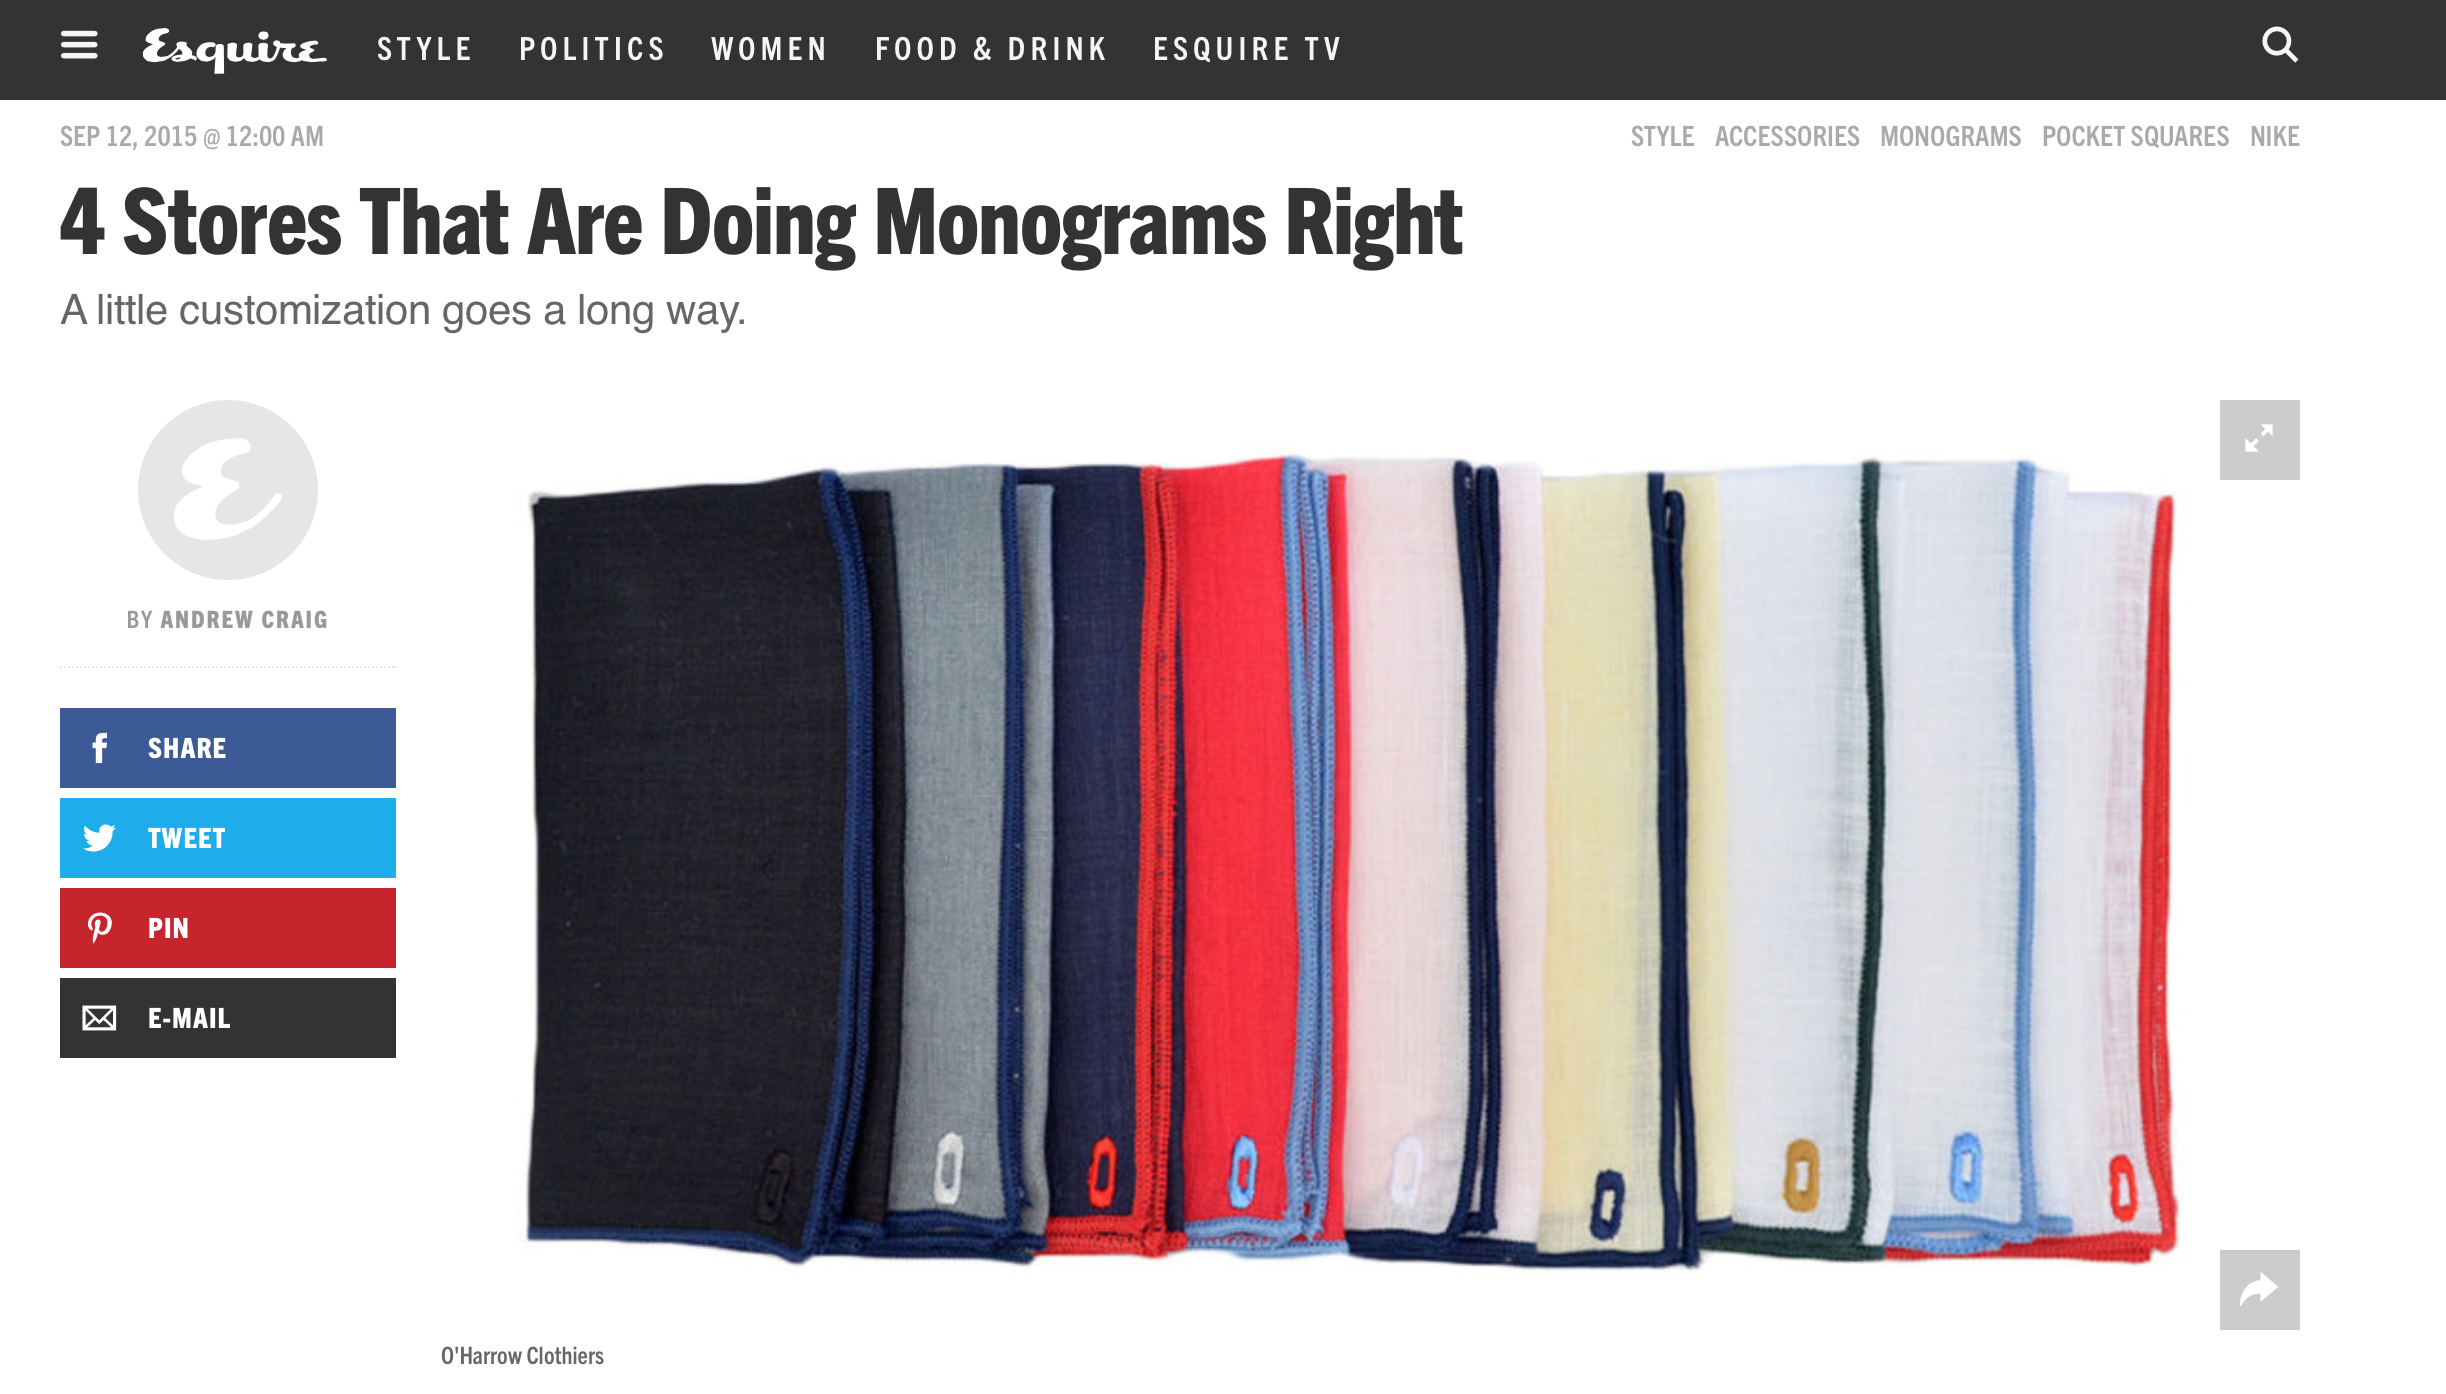 Read the complete article here: http://www.esquire.com/style/mens-accessories/a37634/best-stores-for-monograms/